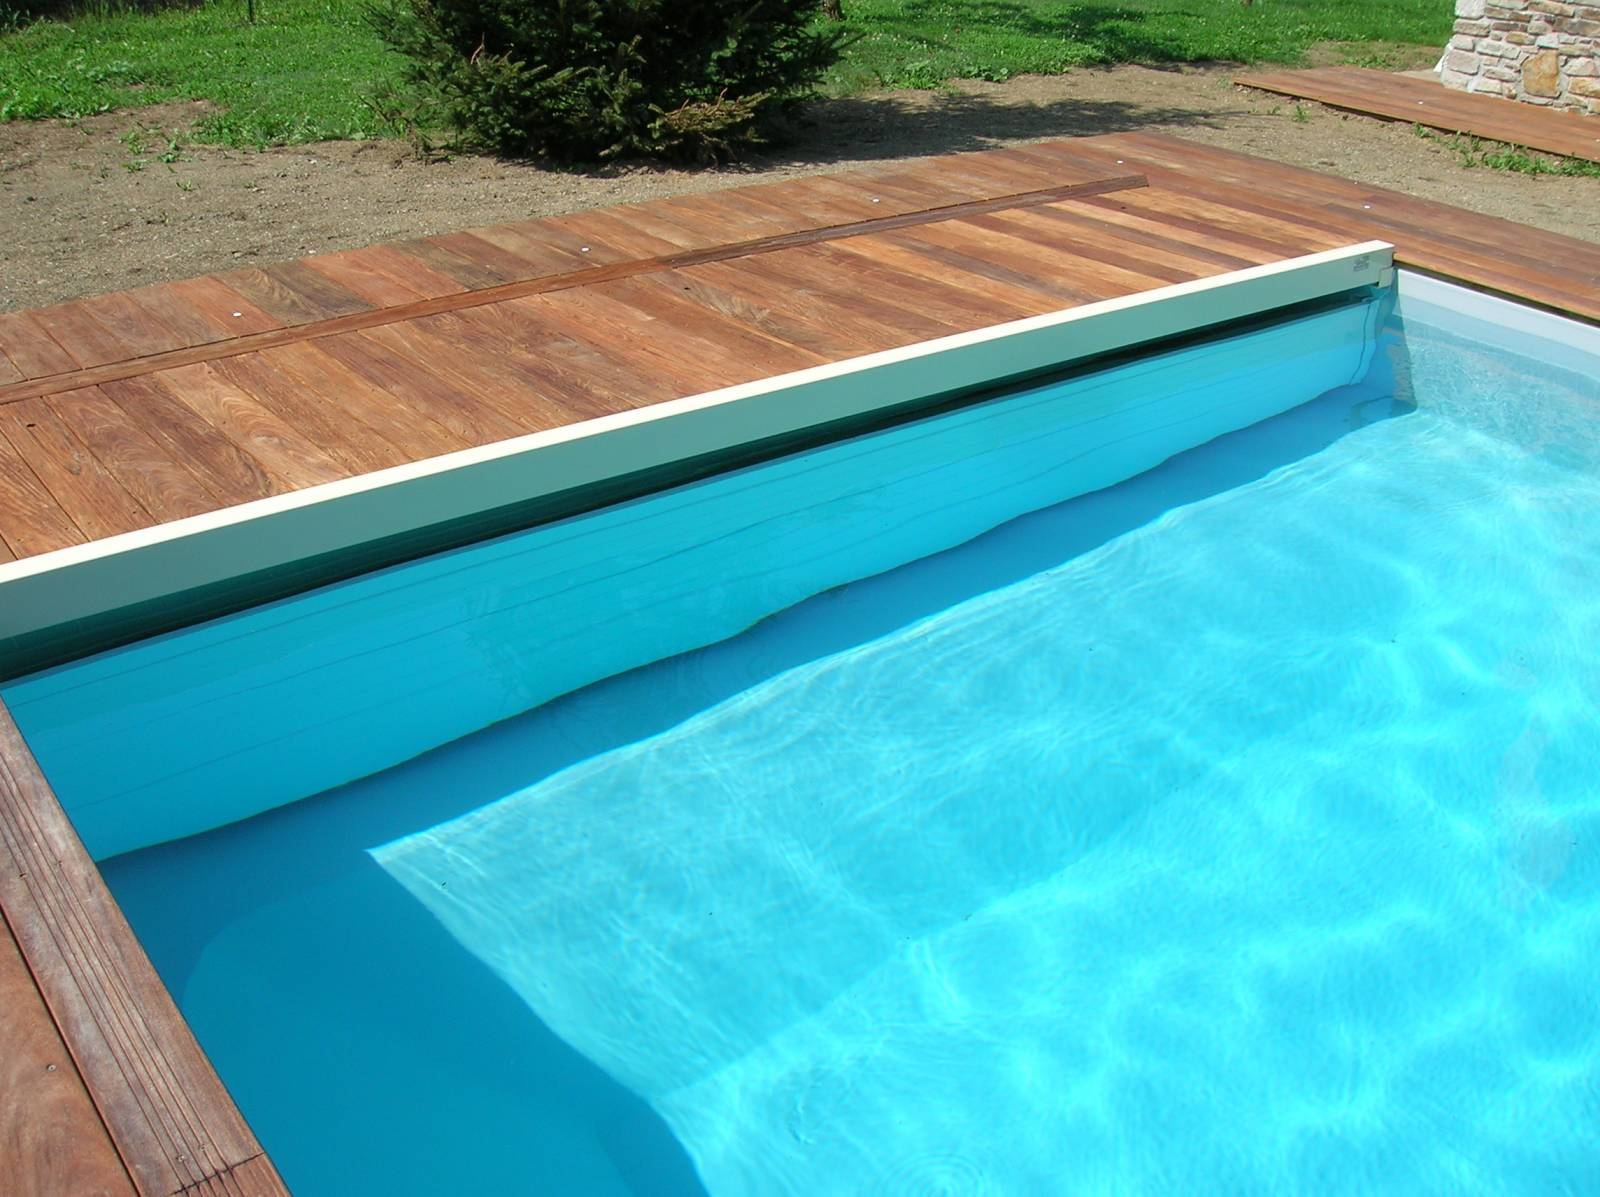 Volet immerge de securite distribu par desjoyaux six for Prix volet immerge piscine 8x4